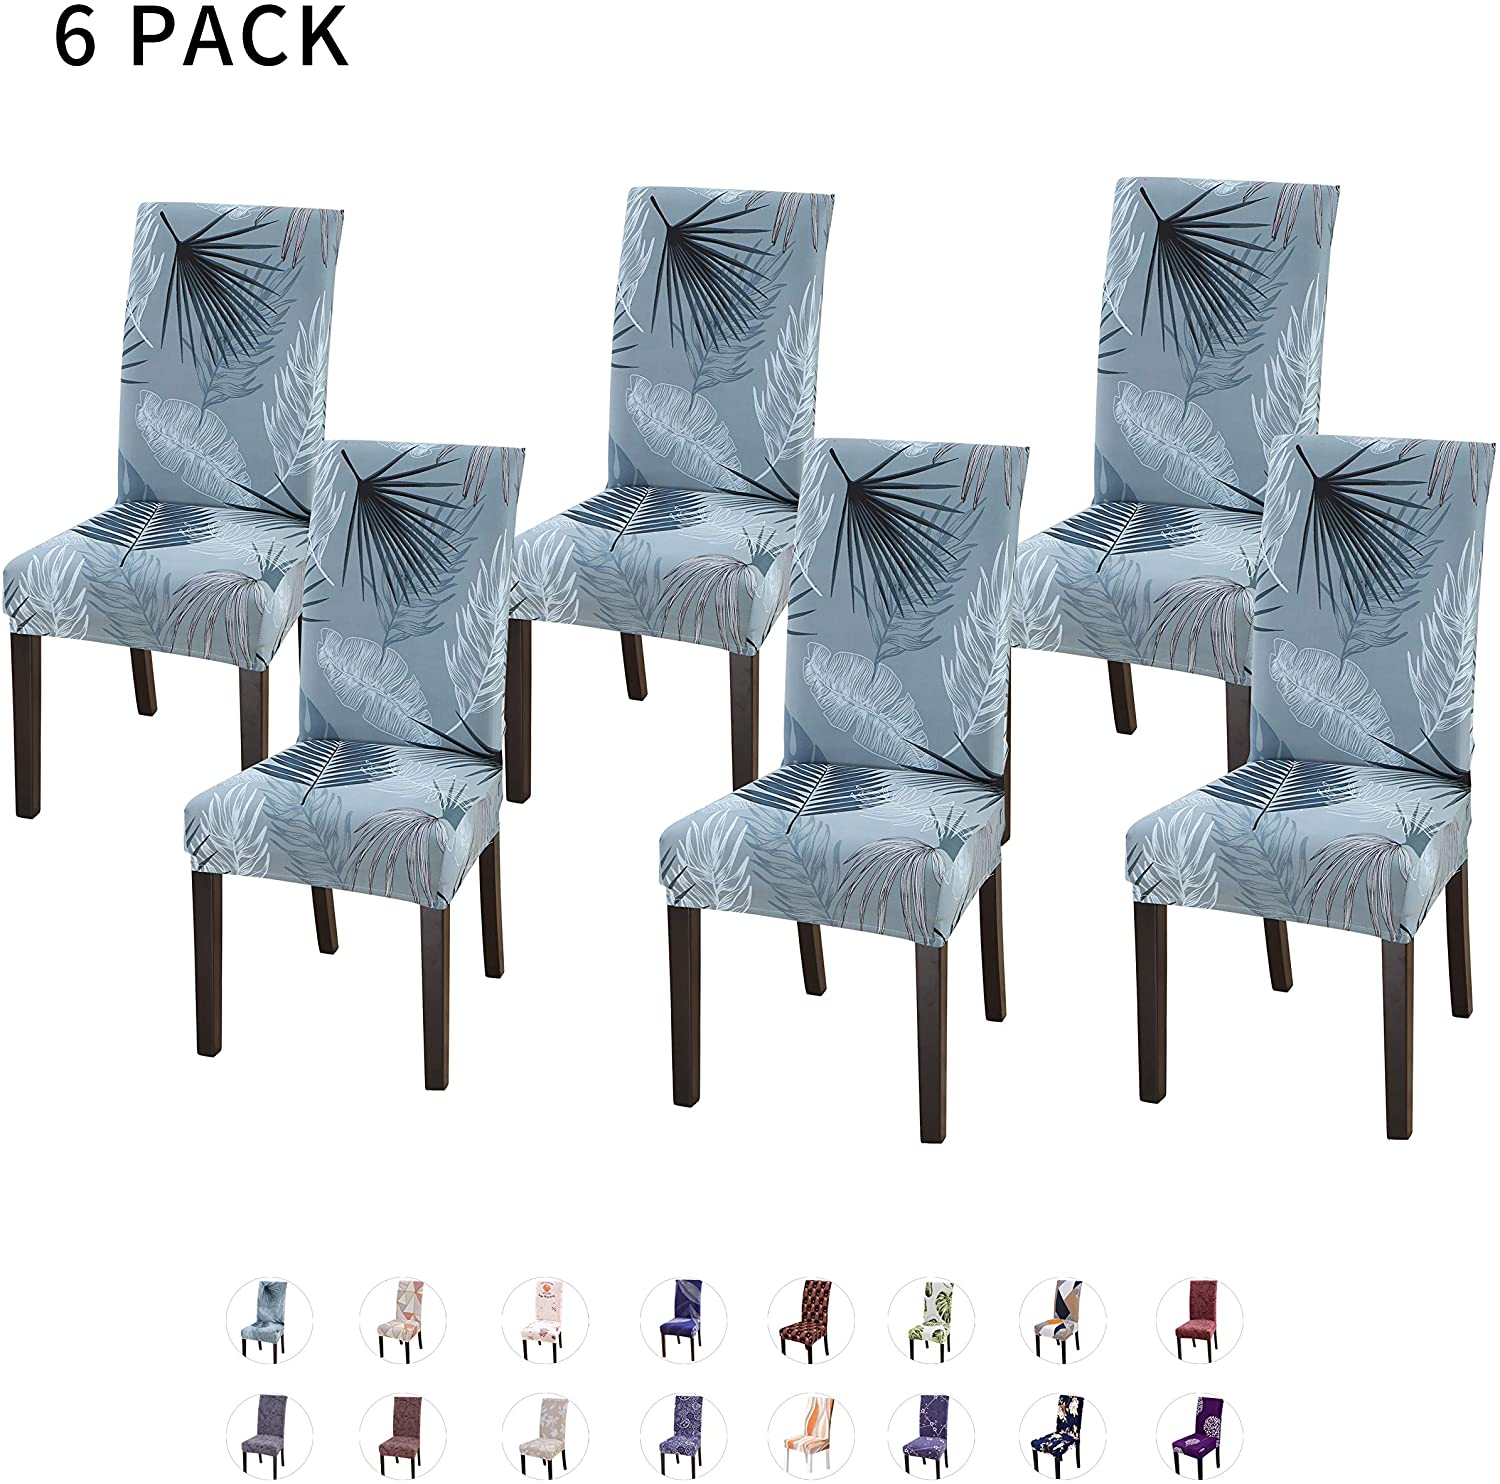 HOTNIU Spandex Fabric Patterned Dining Chair Slipcover - Removable Universal Stretch Elastic Chair Covers - Super Fit Kitchen Chair Protector Cover (6 Pack, BX)